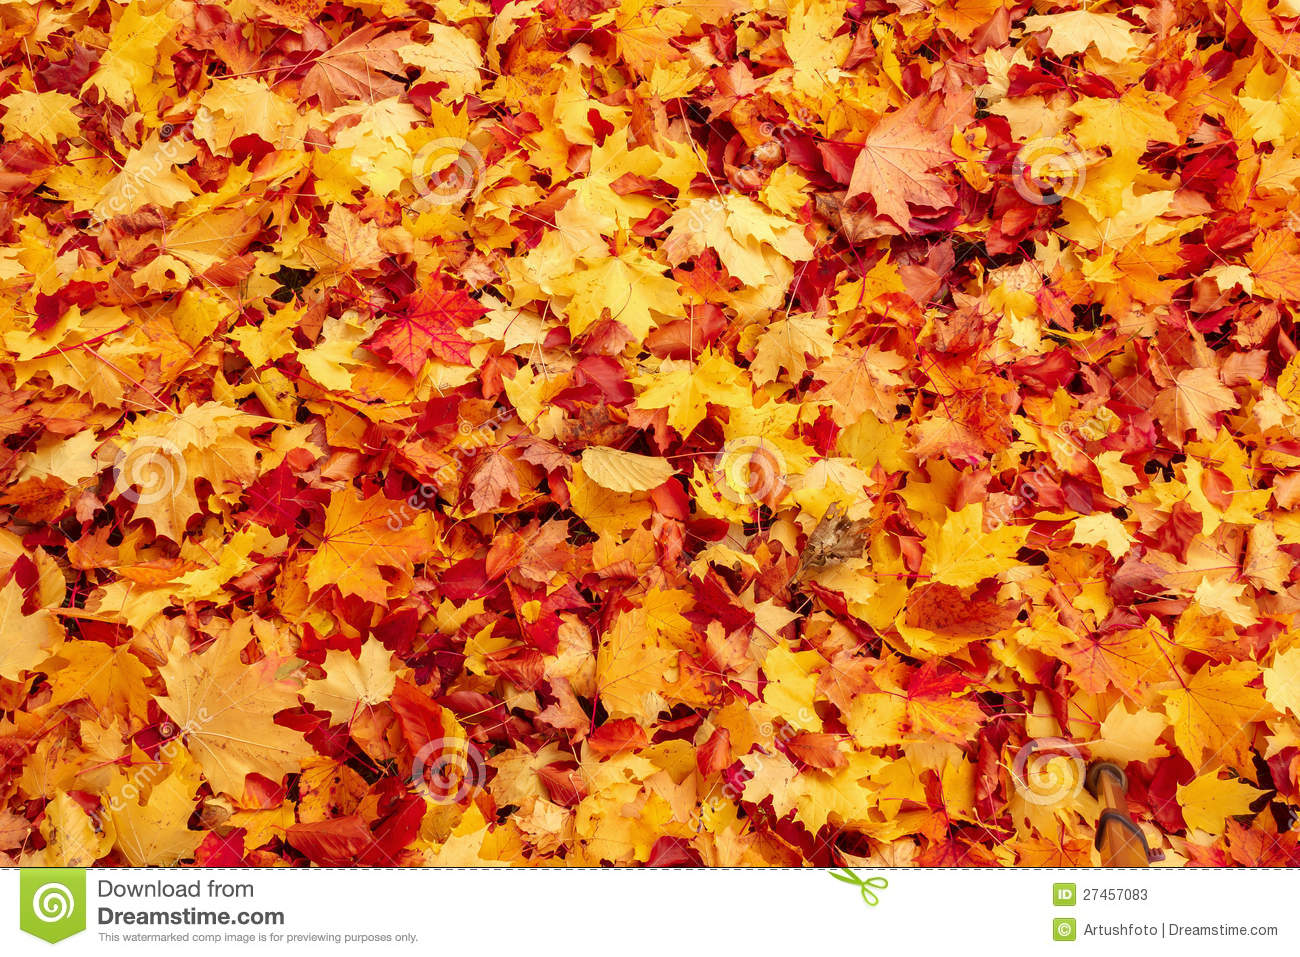 Fall Themed Iphone 6 Wallpaper Fall Orange And Red Autumn Leaves On Ground Stock Image